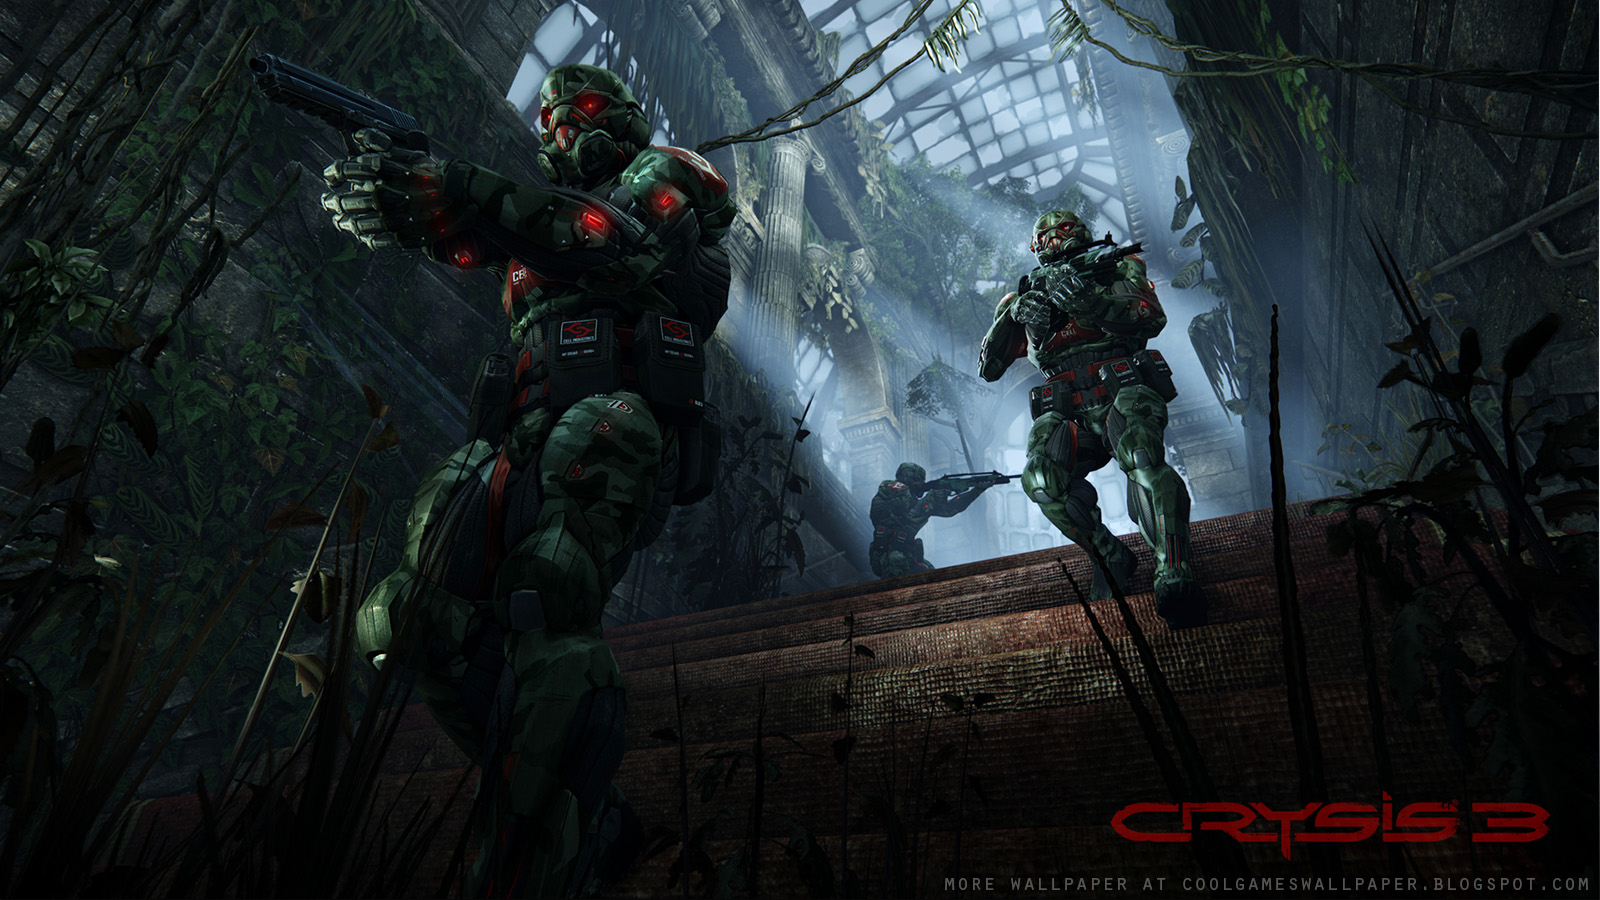 crysis 4 wallpaper hd - photo #43